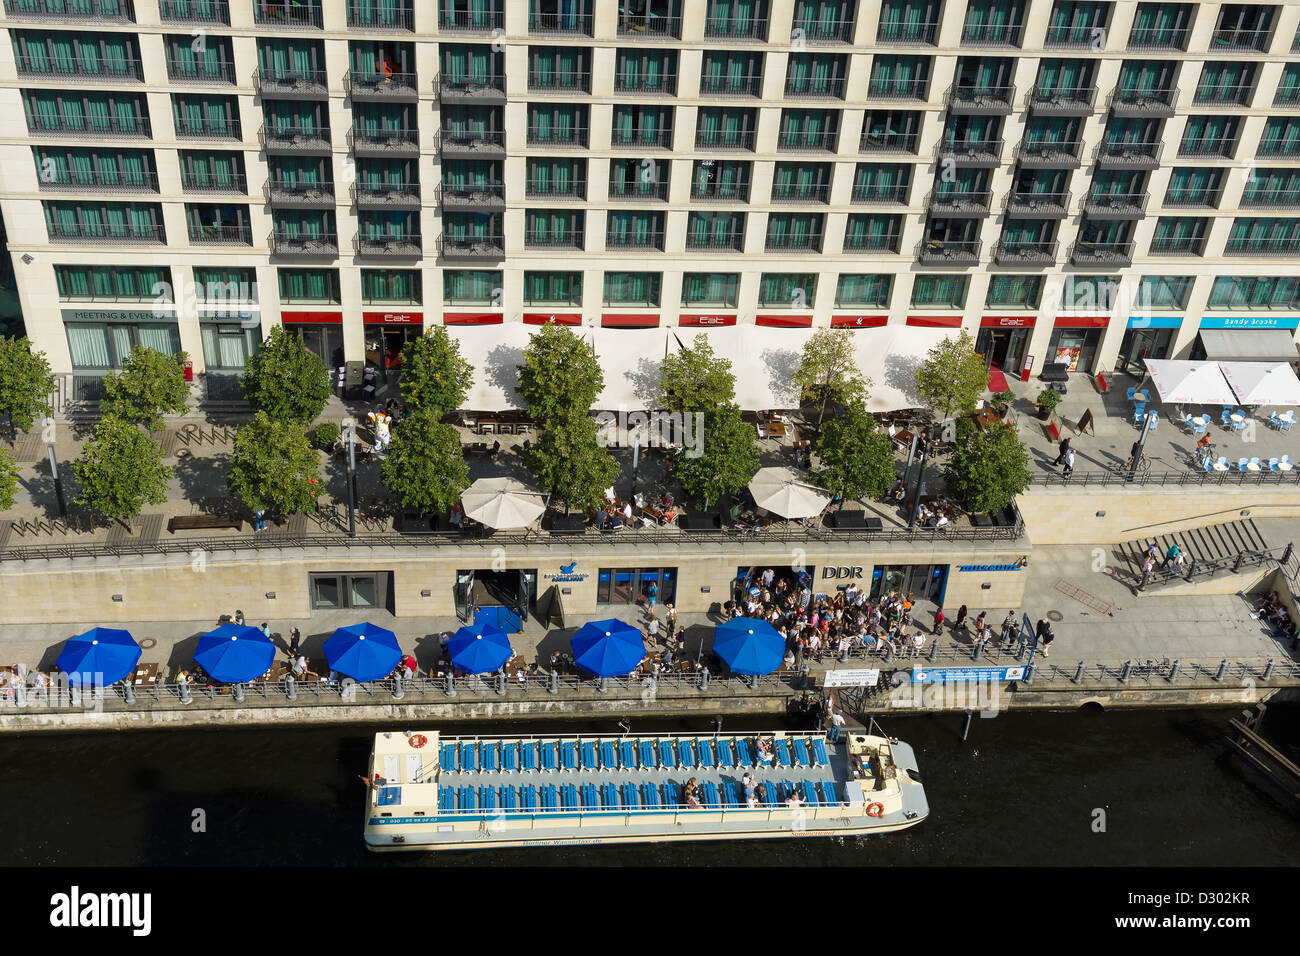 DDR Museum, Spree embankment and mooring for pleasure boats with a bird's eye view - Stock Image